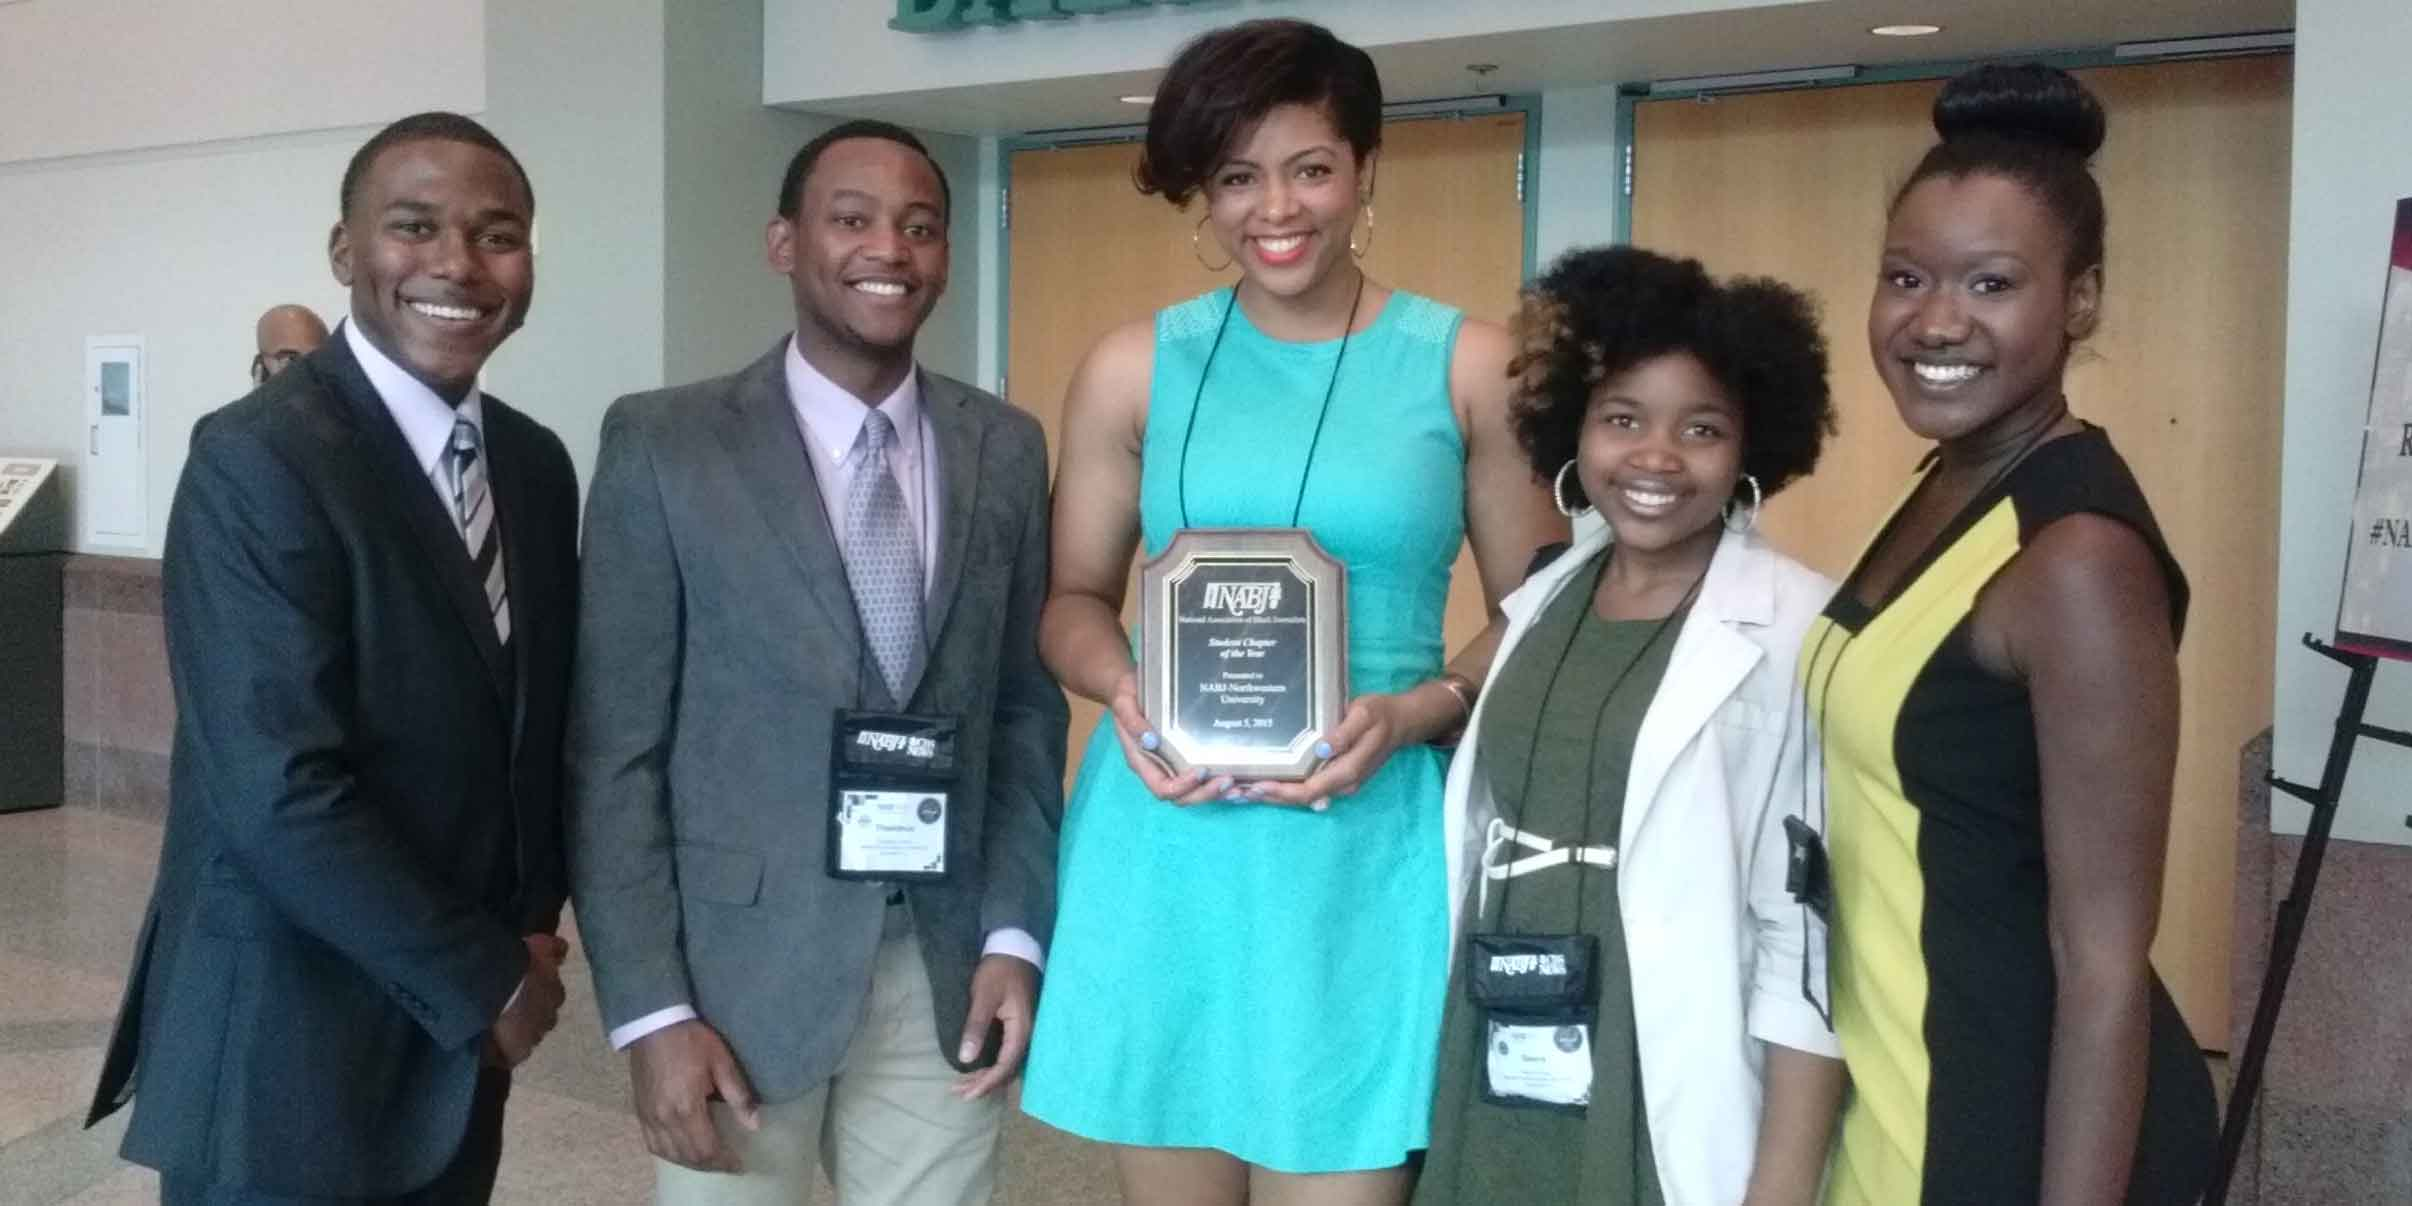 Northwestern NABJ chapter posing with an award.